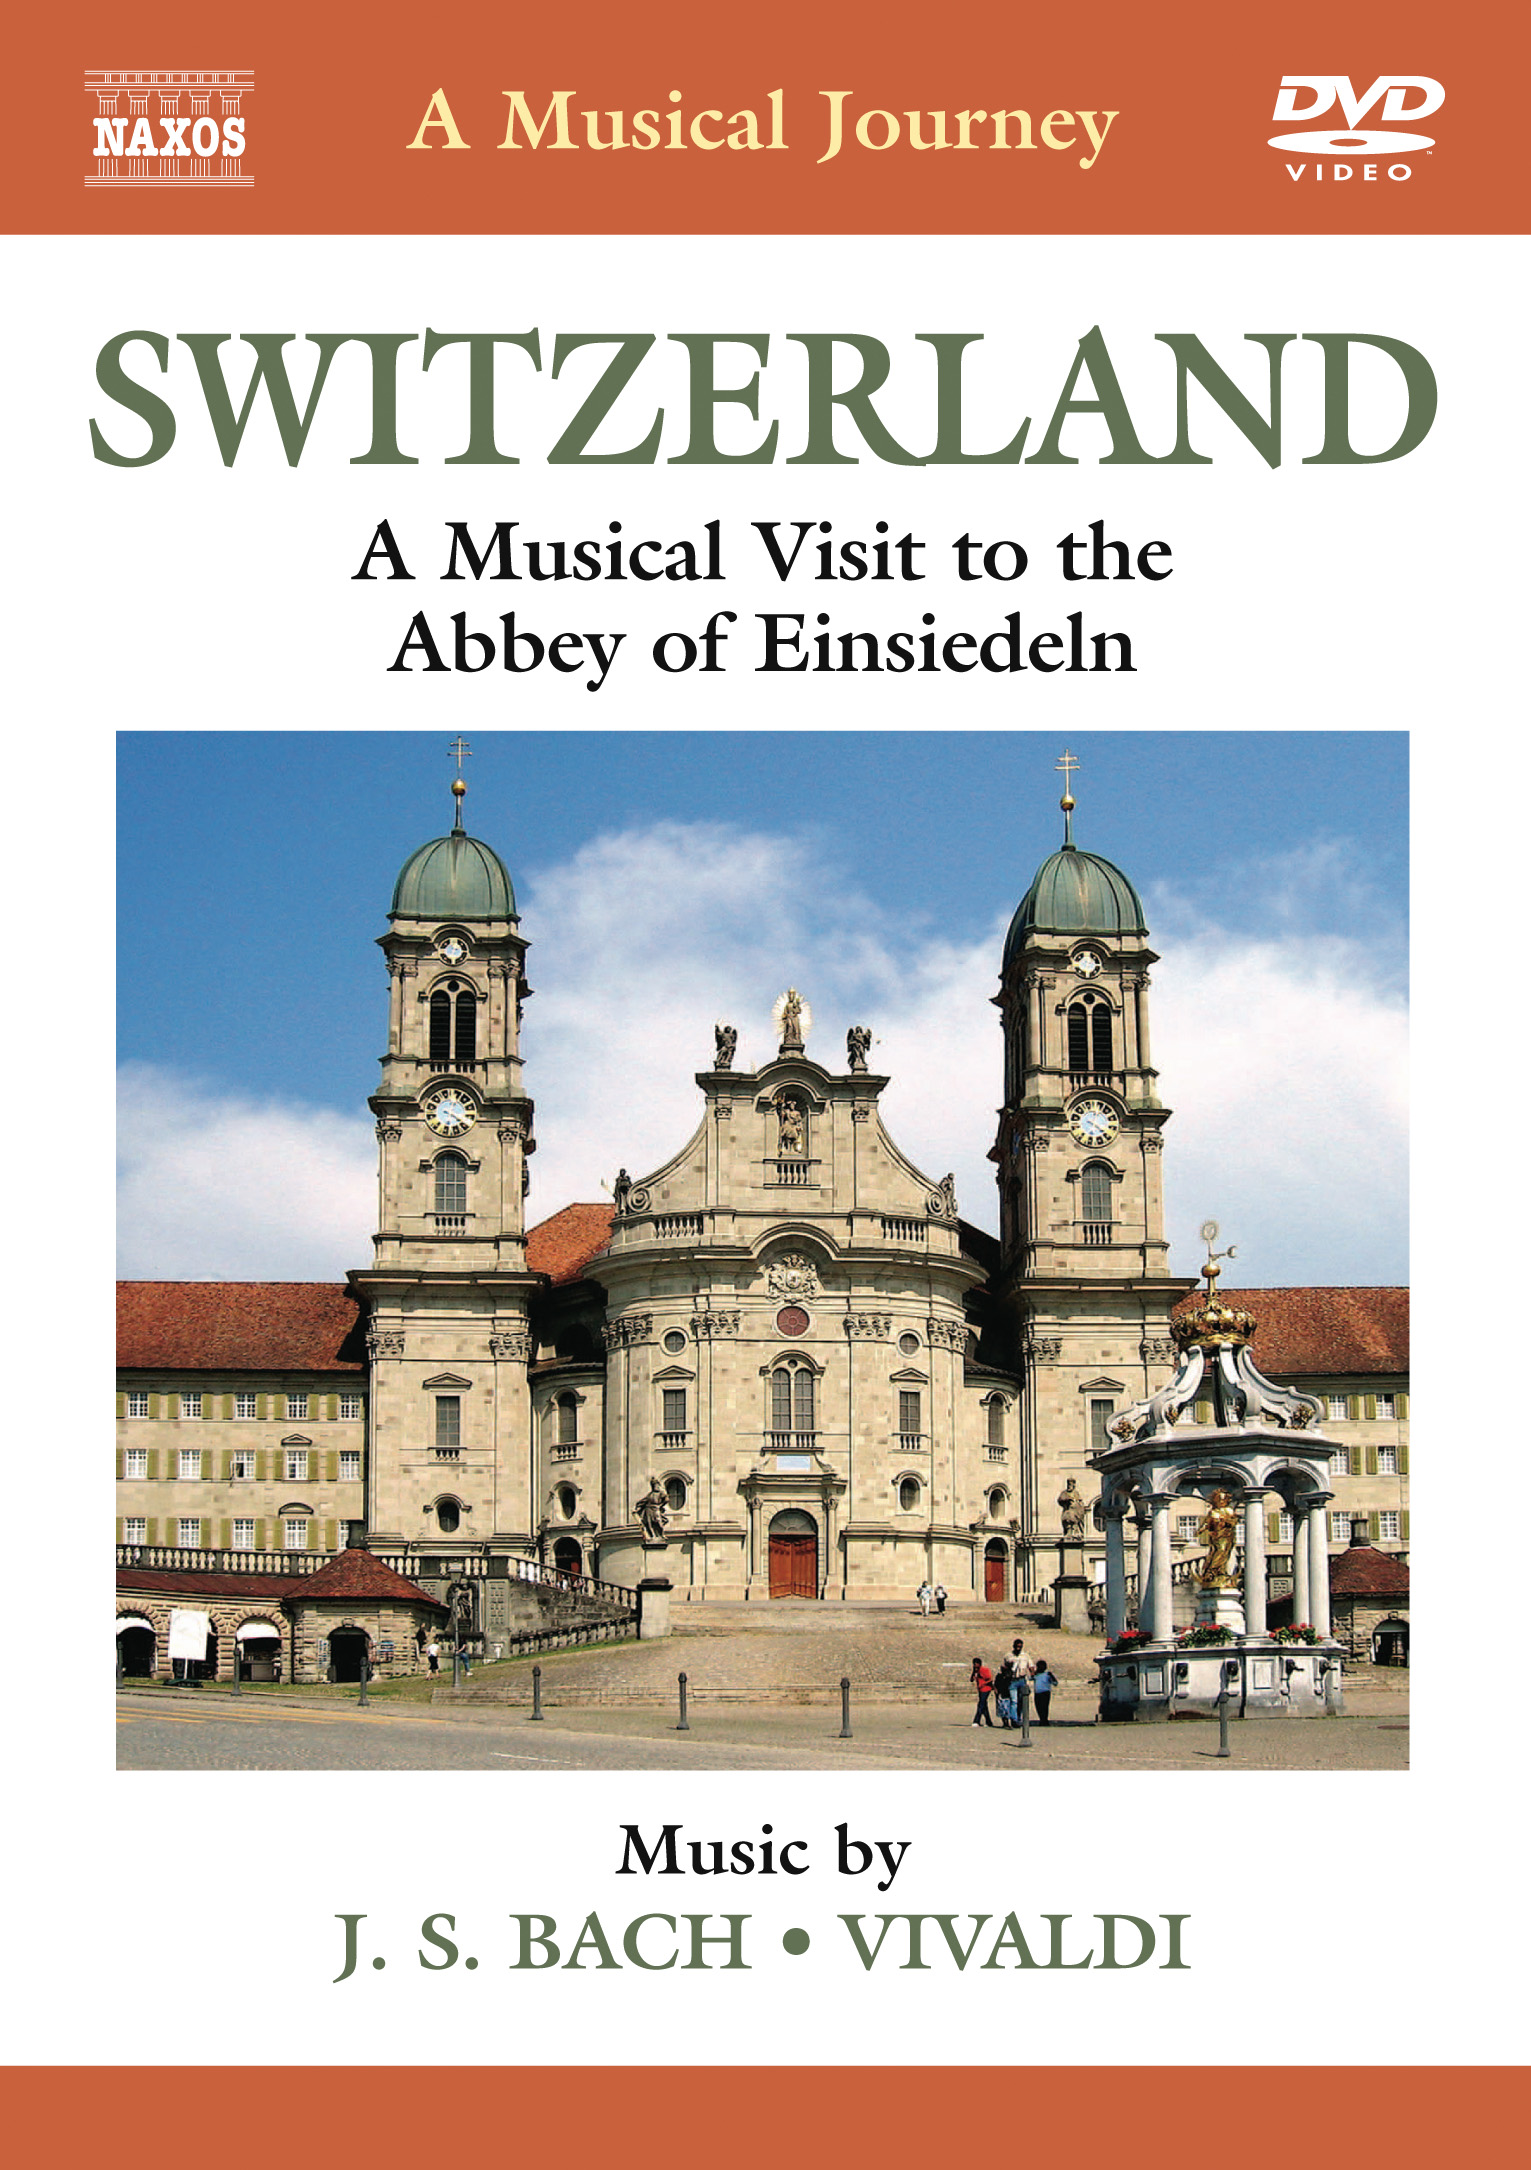 A Musical Journey: Switzerland - A Musical Visit to the Abbey of Einsiedeln